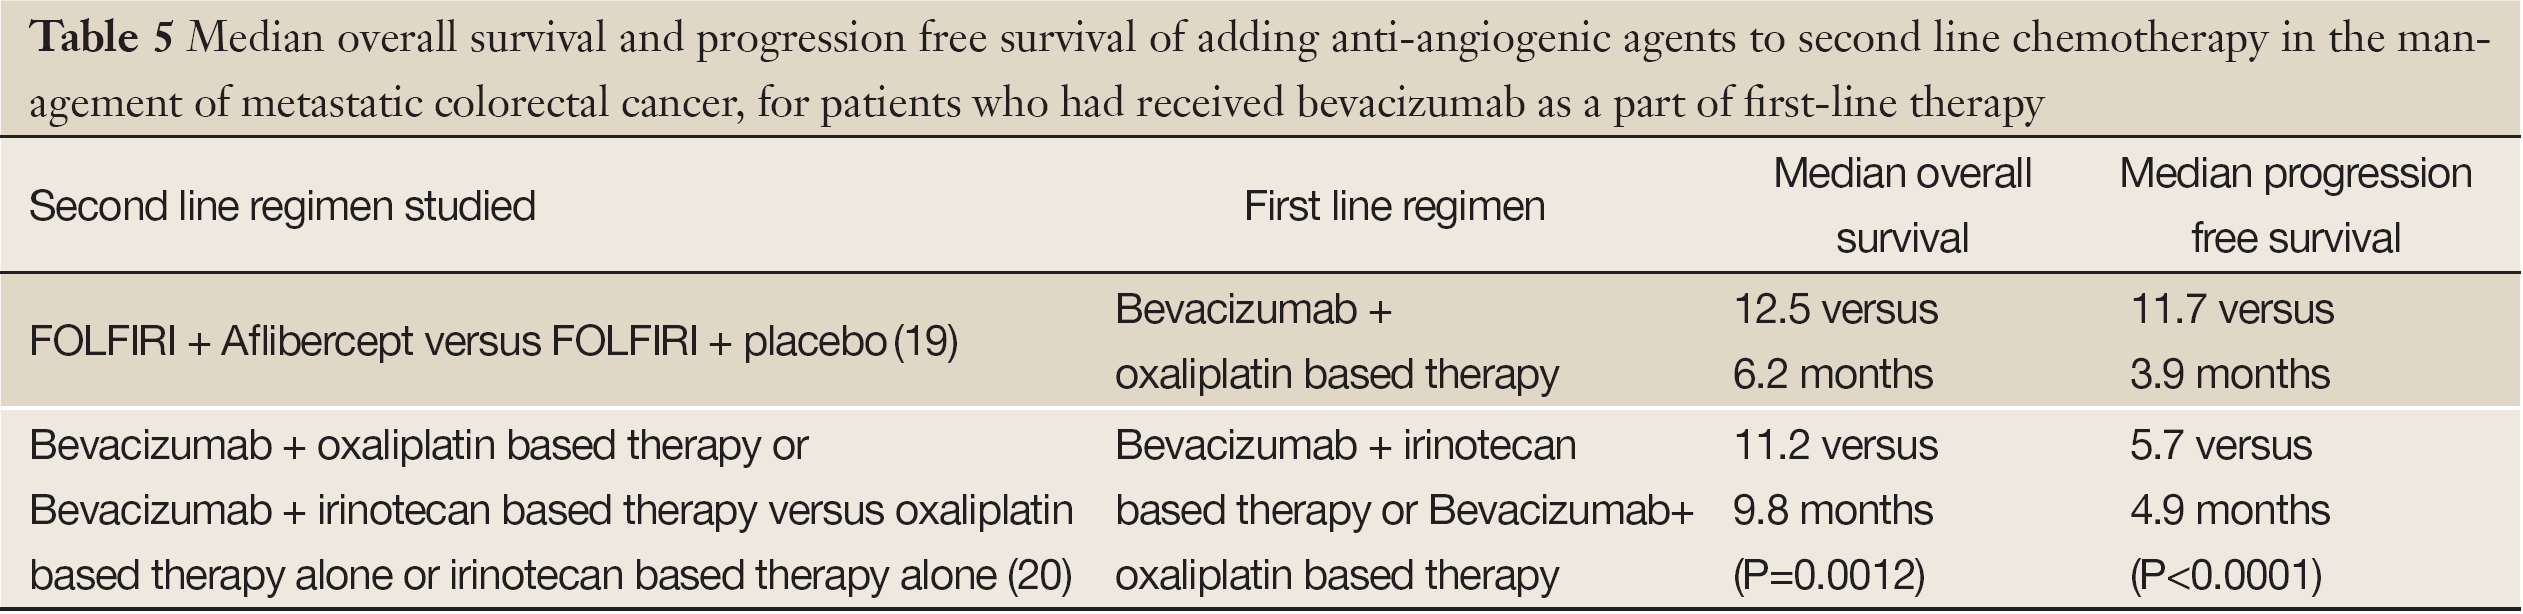 Continuum Of Care With Anti Angiogenic Therapies In